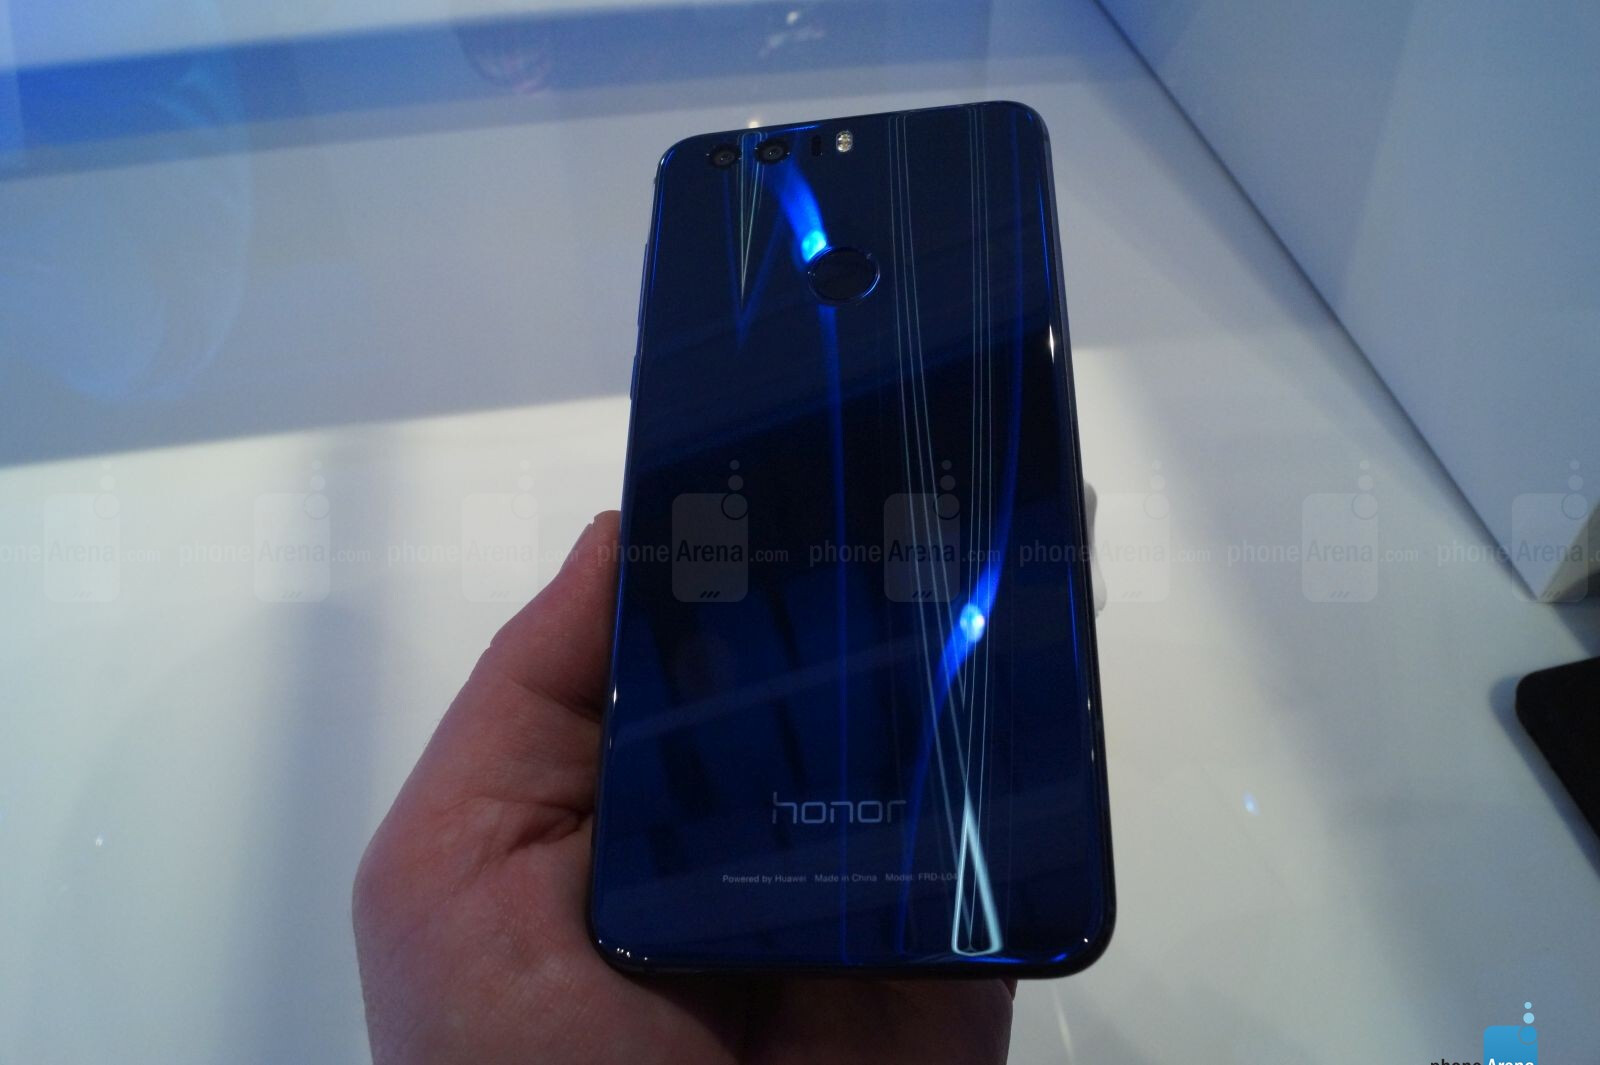 Huawei Honor 8 goes official in Europe, would you buy one?